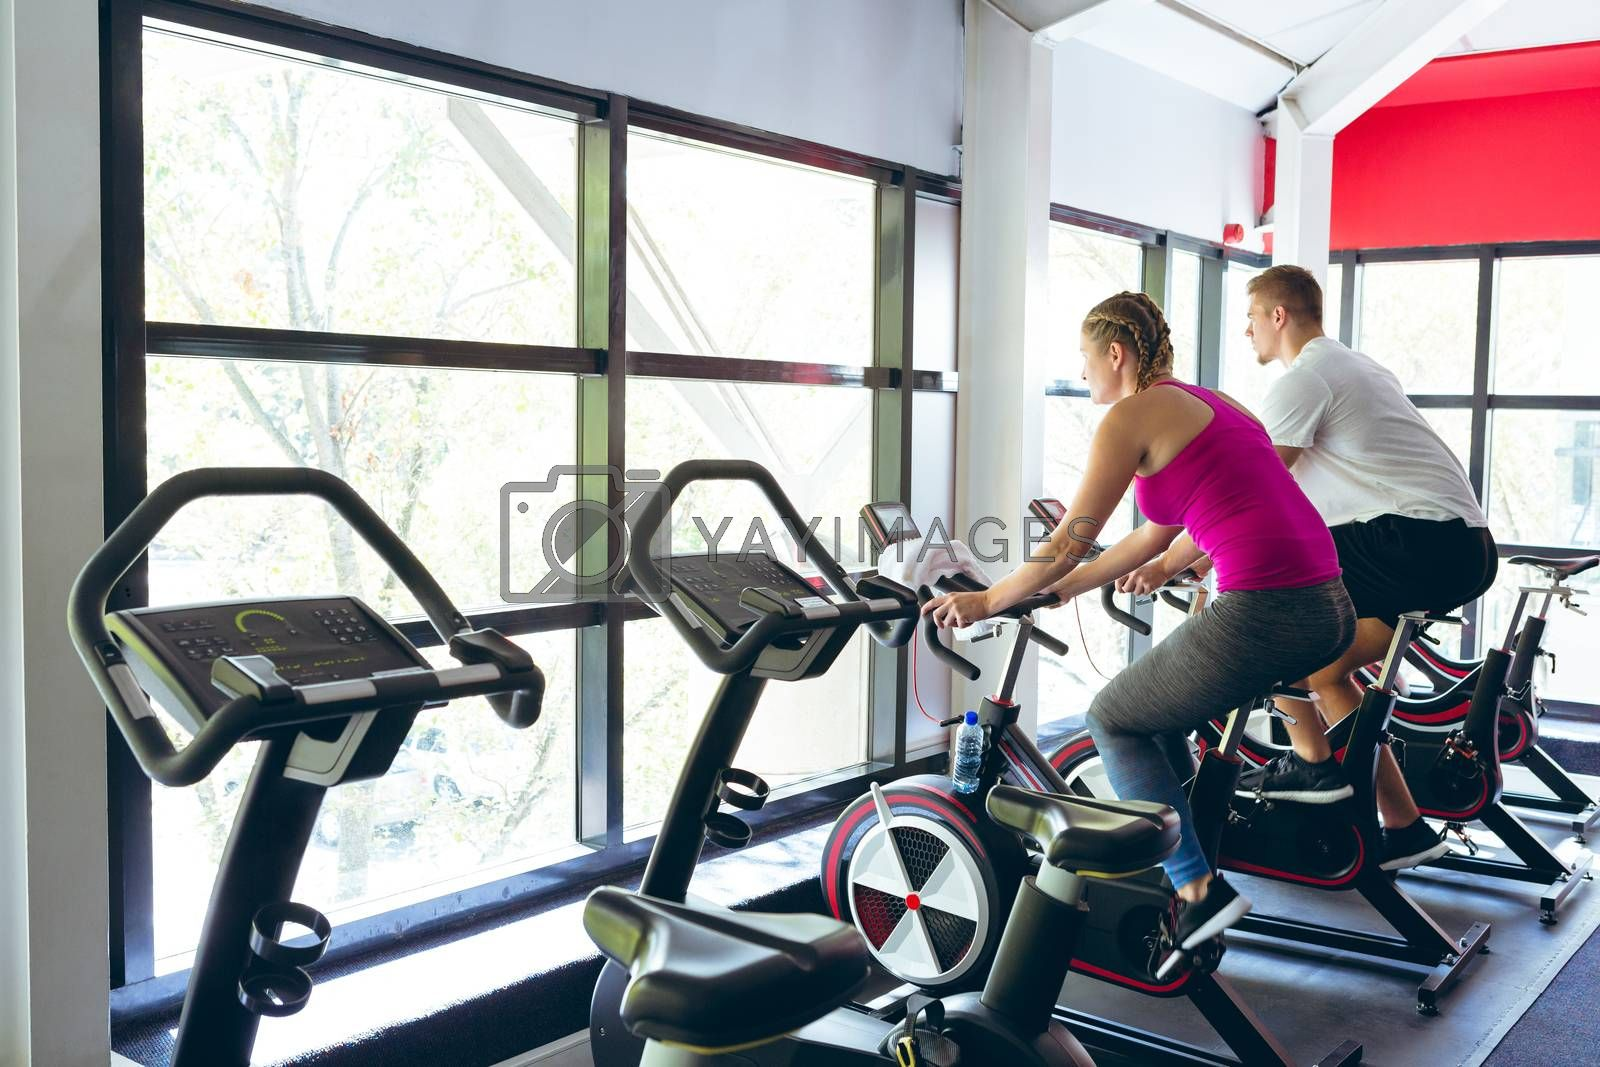 Rear view of young Caucasian male and female athlete exercising with exercise bike in fitness center. Bright modern gym with fit healthy people working out and training